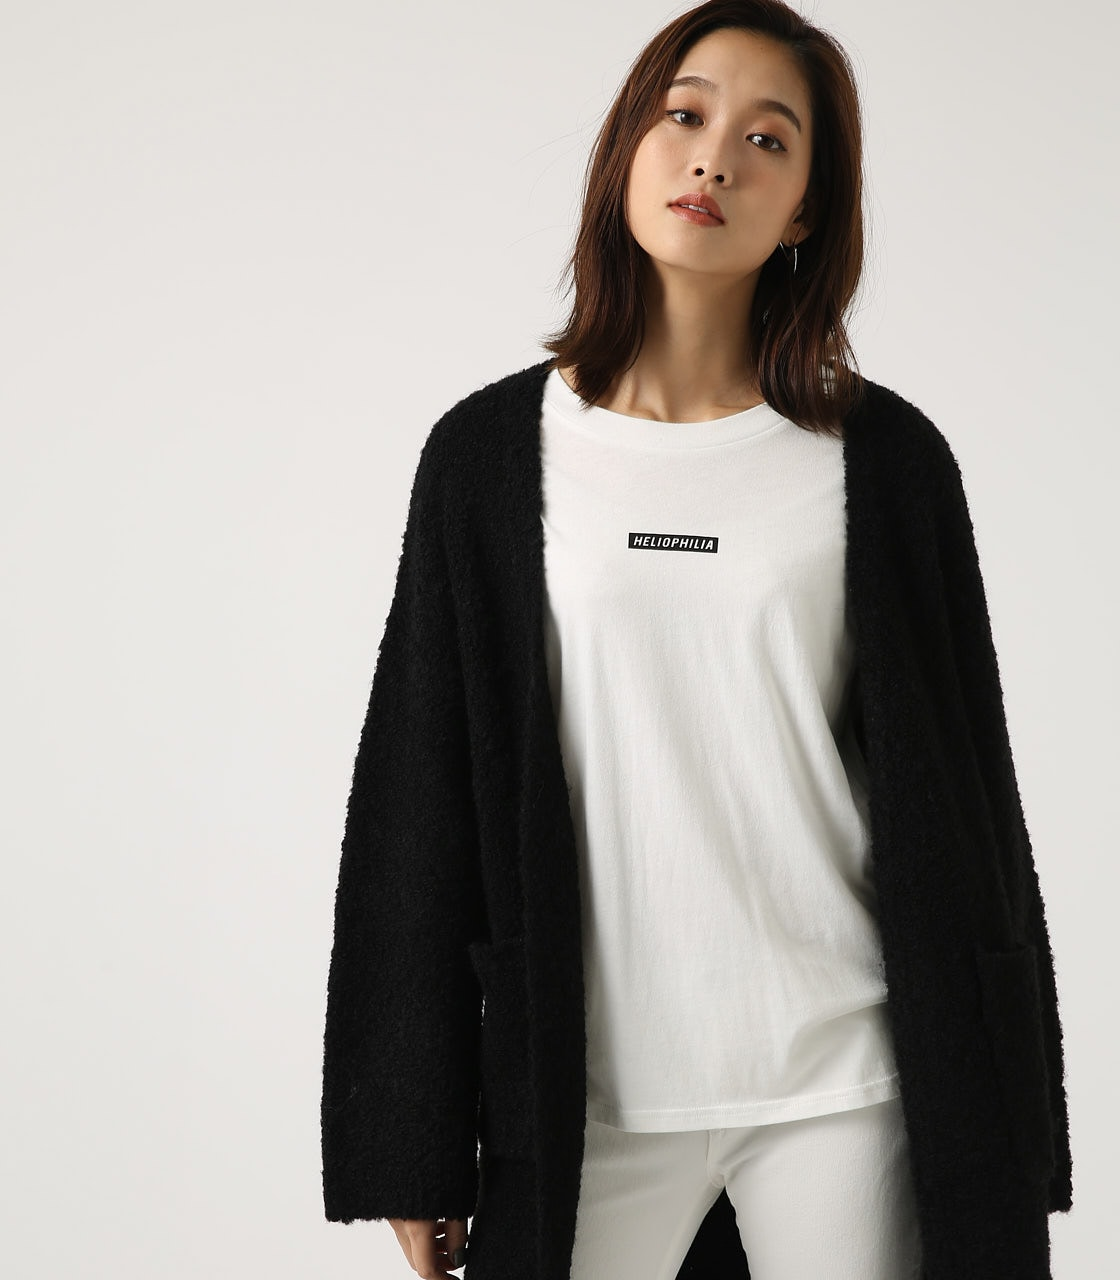 【AZUL BY MOUSSY】ブークレロングカーデ 詳細画像 BLK 1